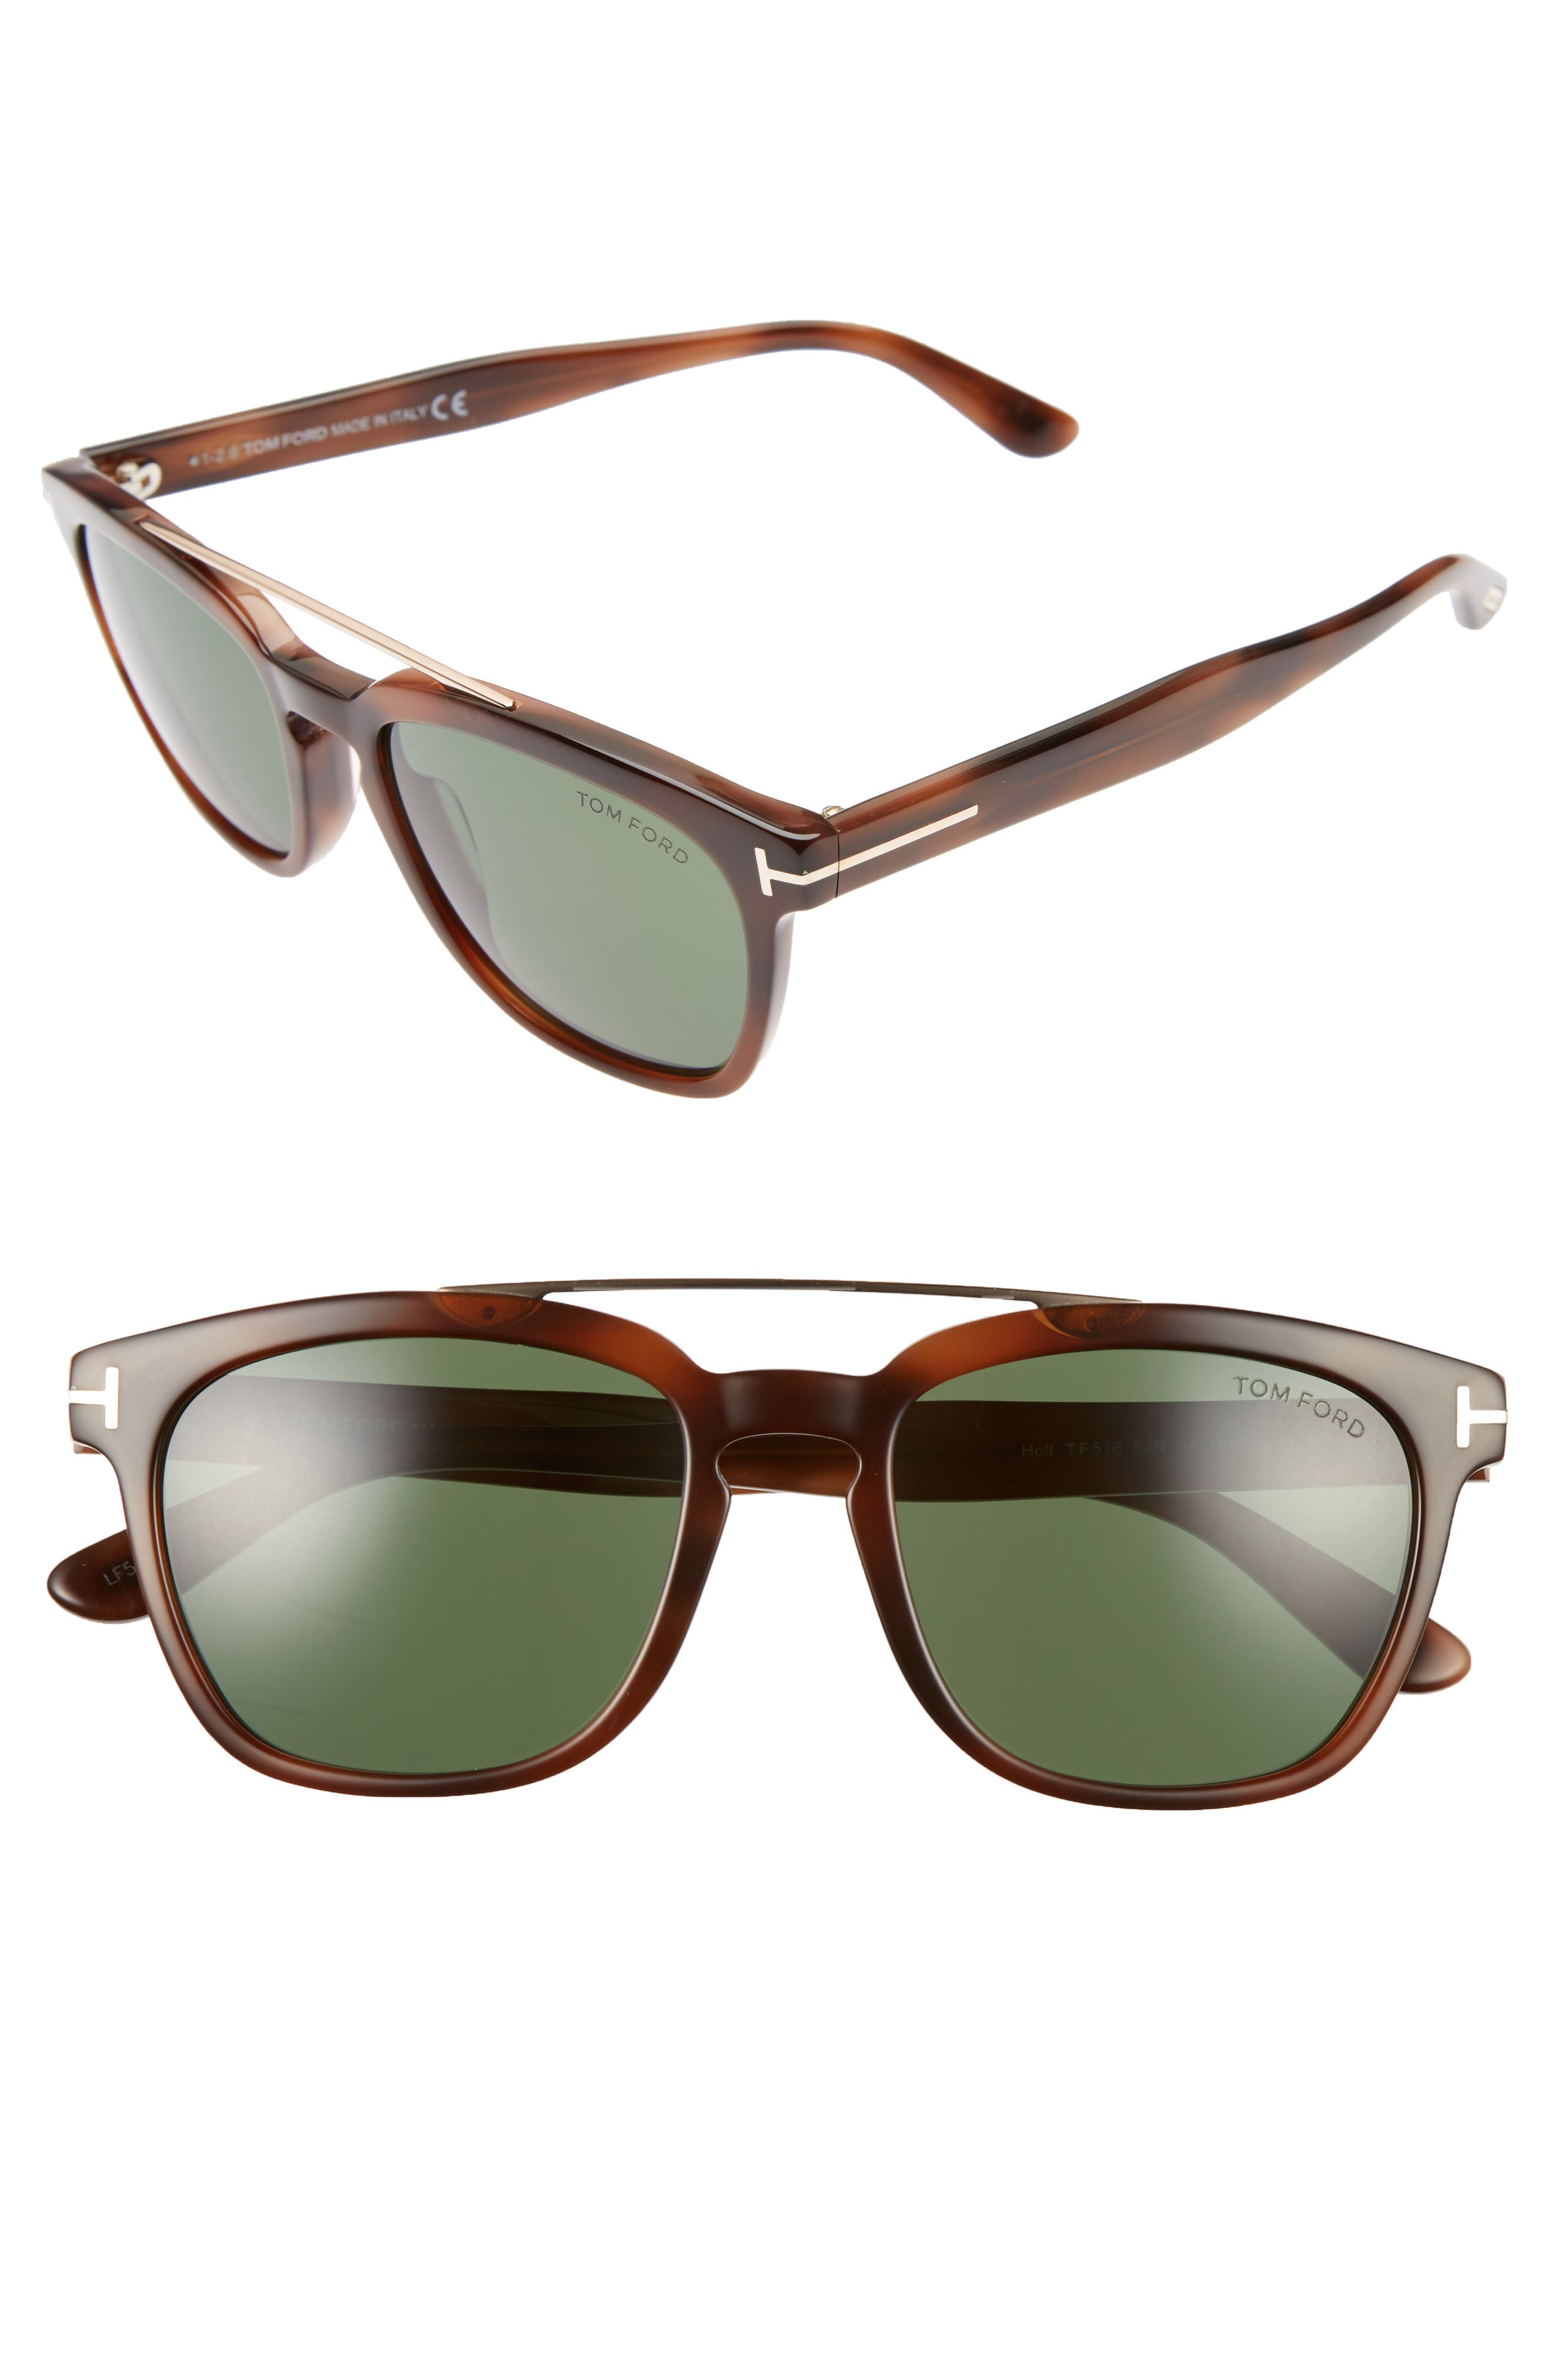 54mm Double Brow Bar Sunglasses,                             Main thumbnail 1, color,                             Blonde/ Rose Gold/ Green